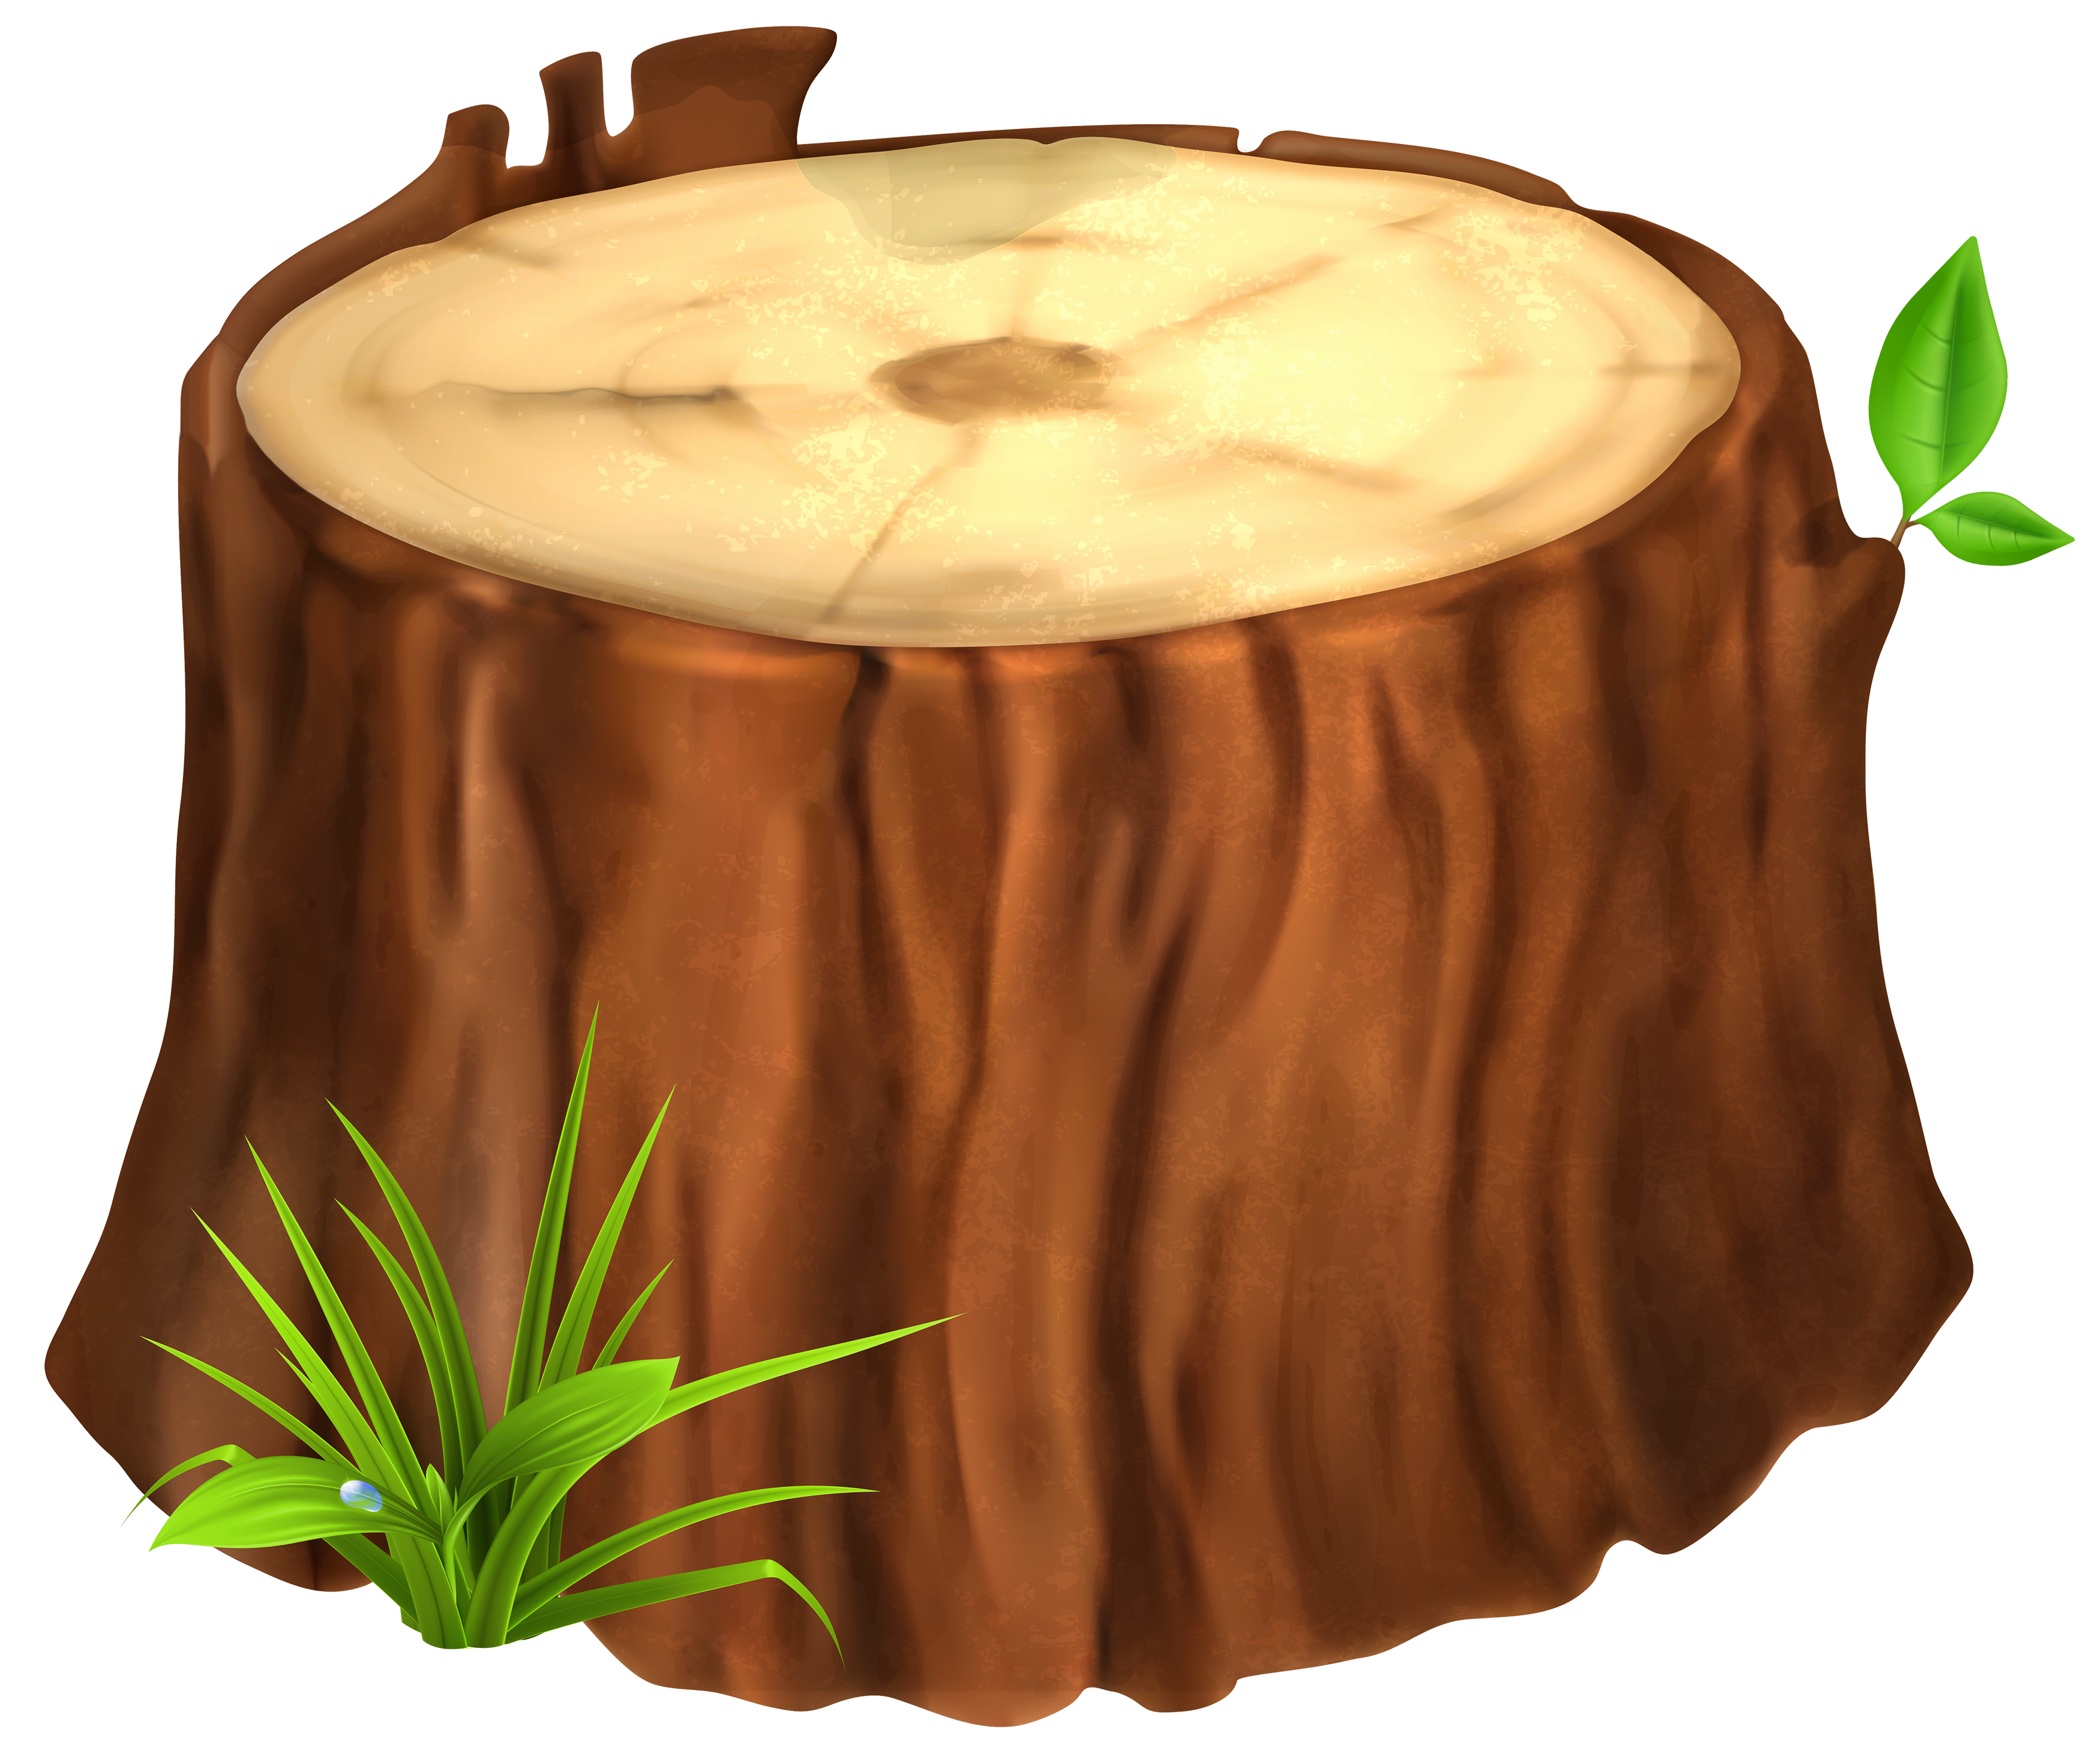 Tree log clipart graphic royalty free library Tree Stump PNG Clipart Image | Gallery Yopriceville - High-Quality ... graphic royalty free library